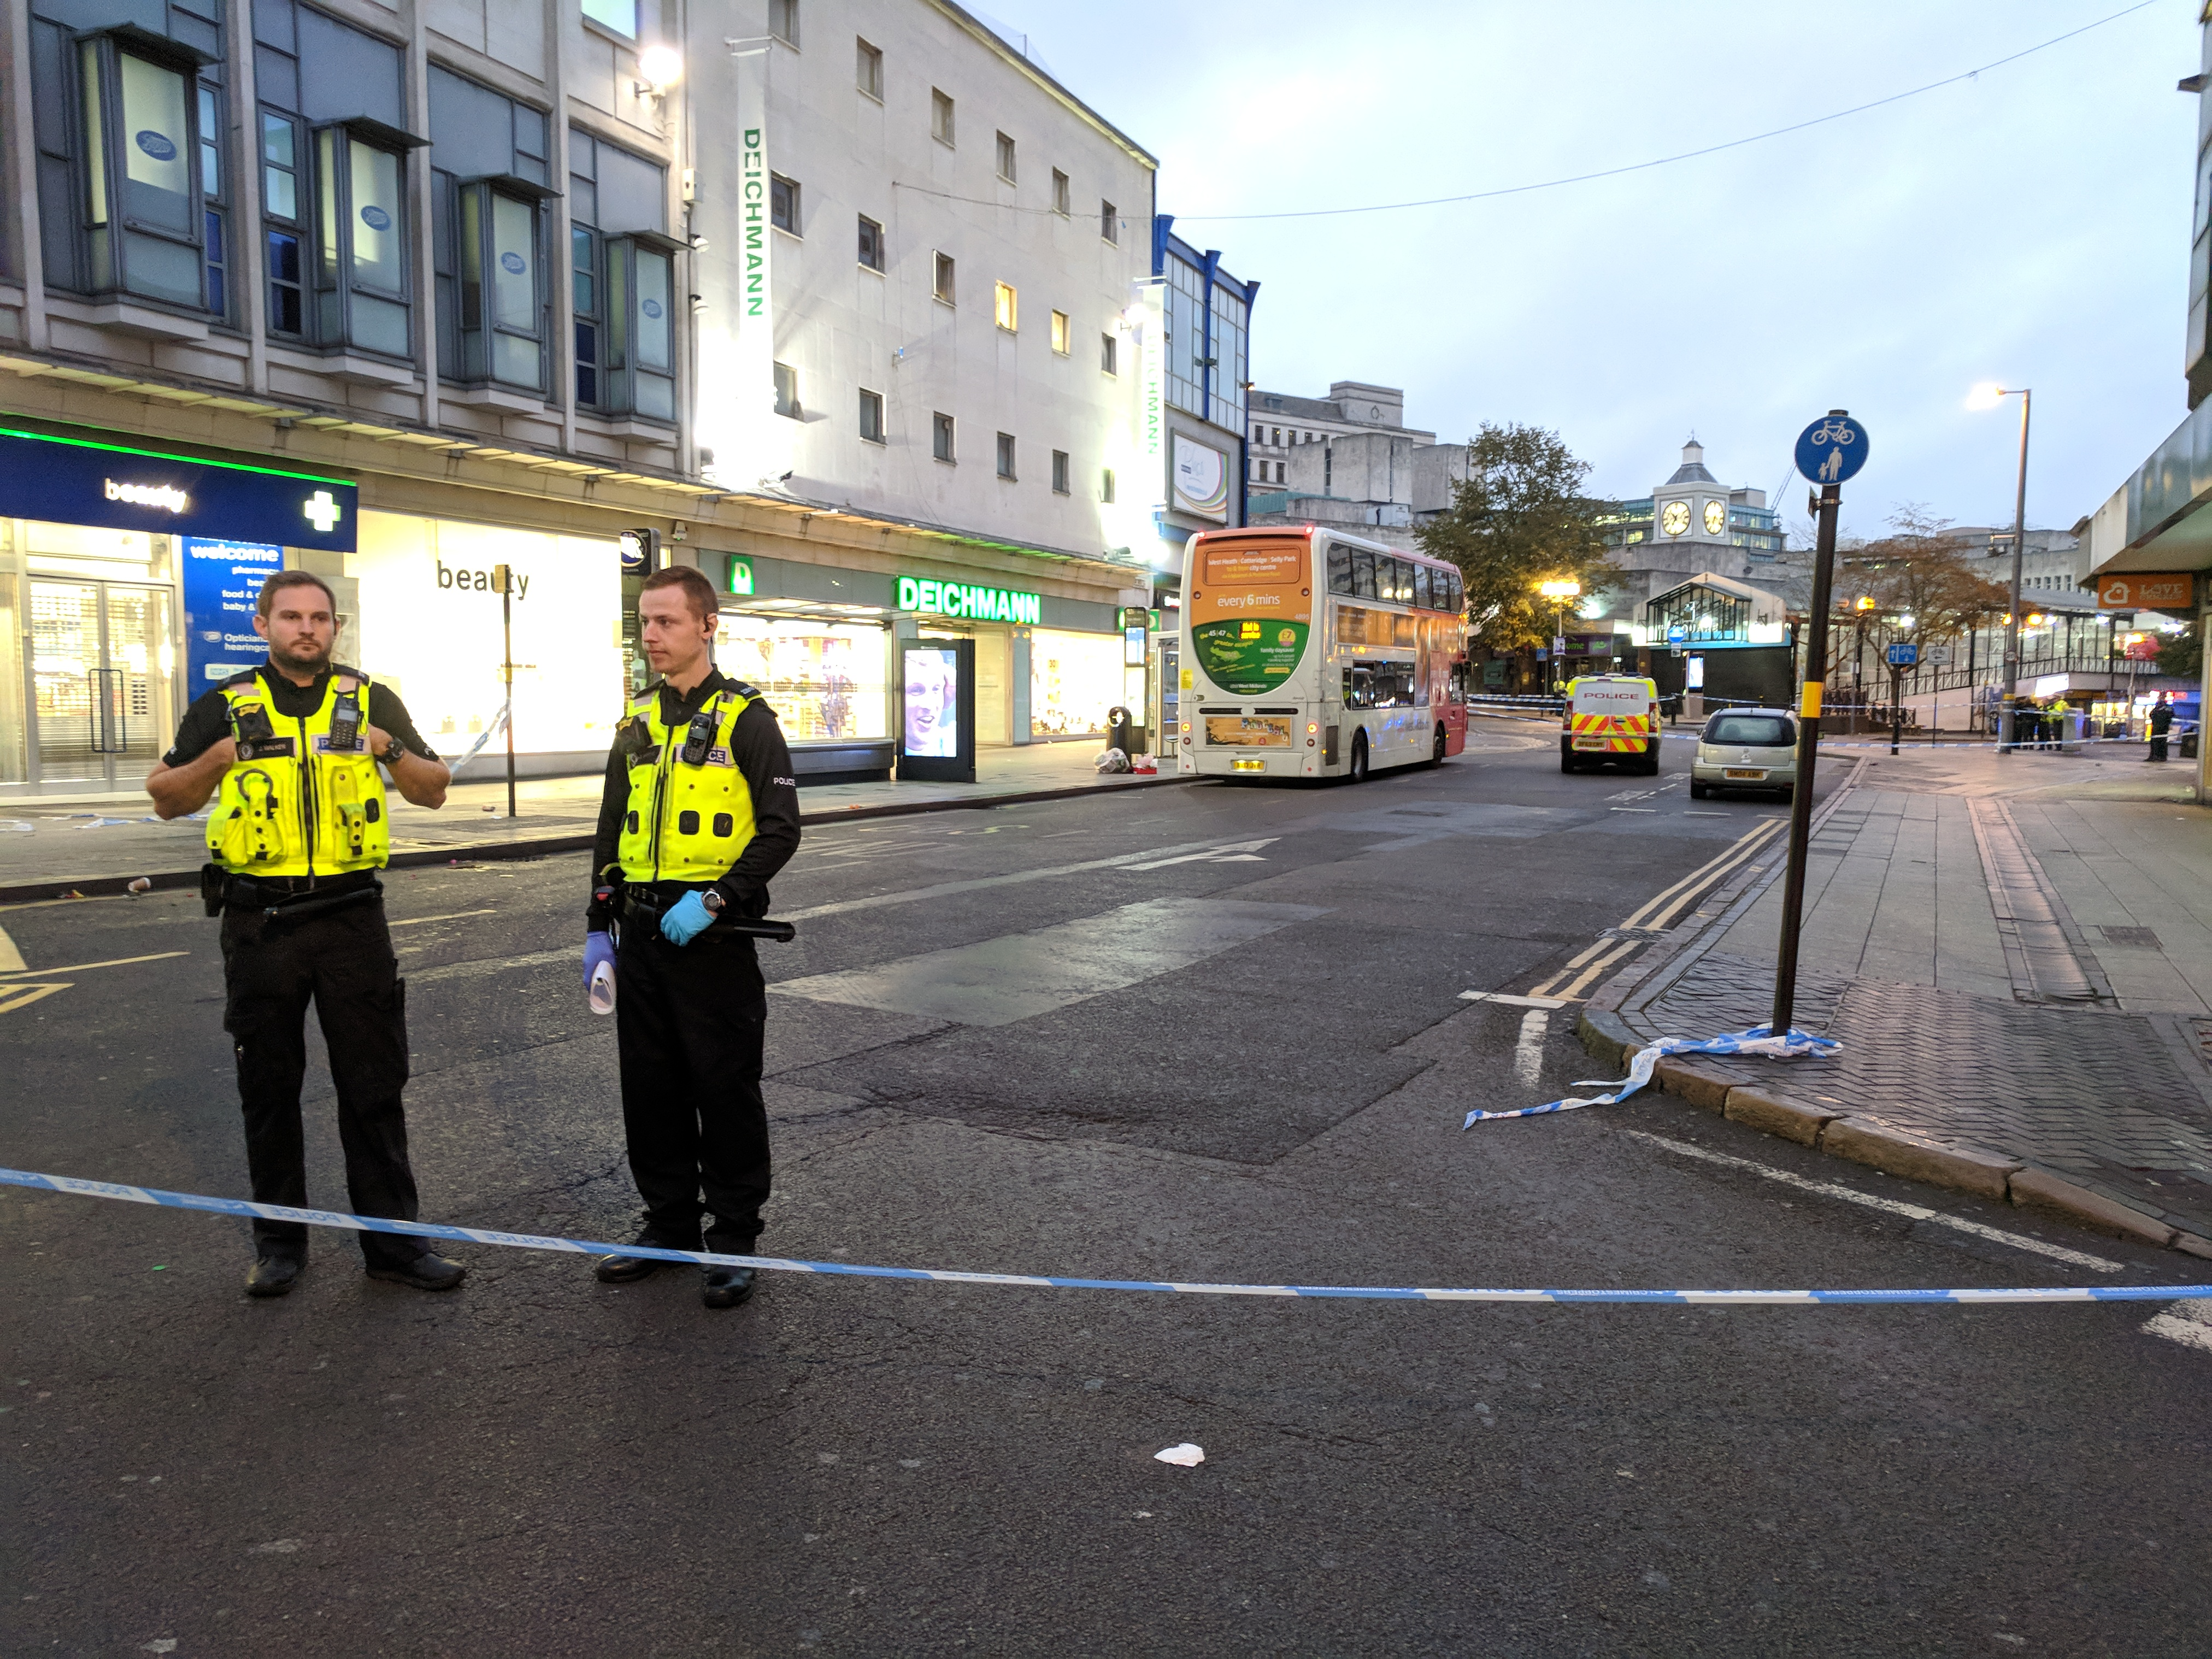 Area sealed off with police tape with two officers standing guard